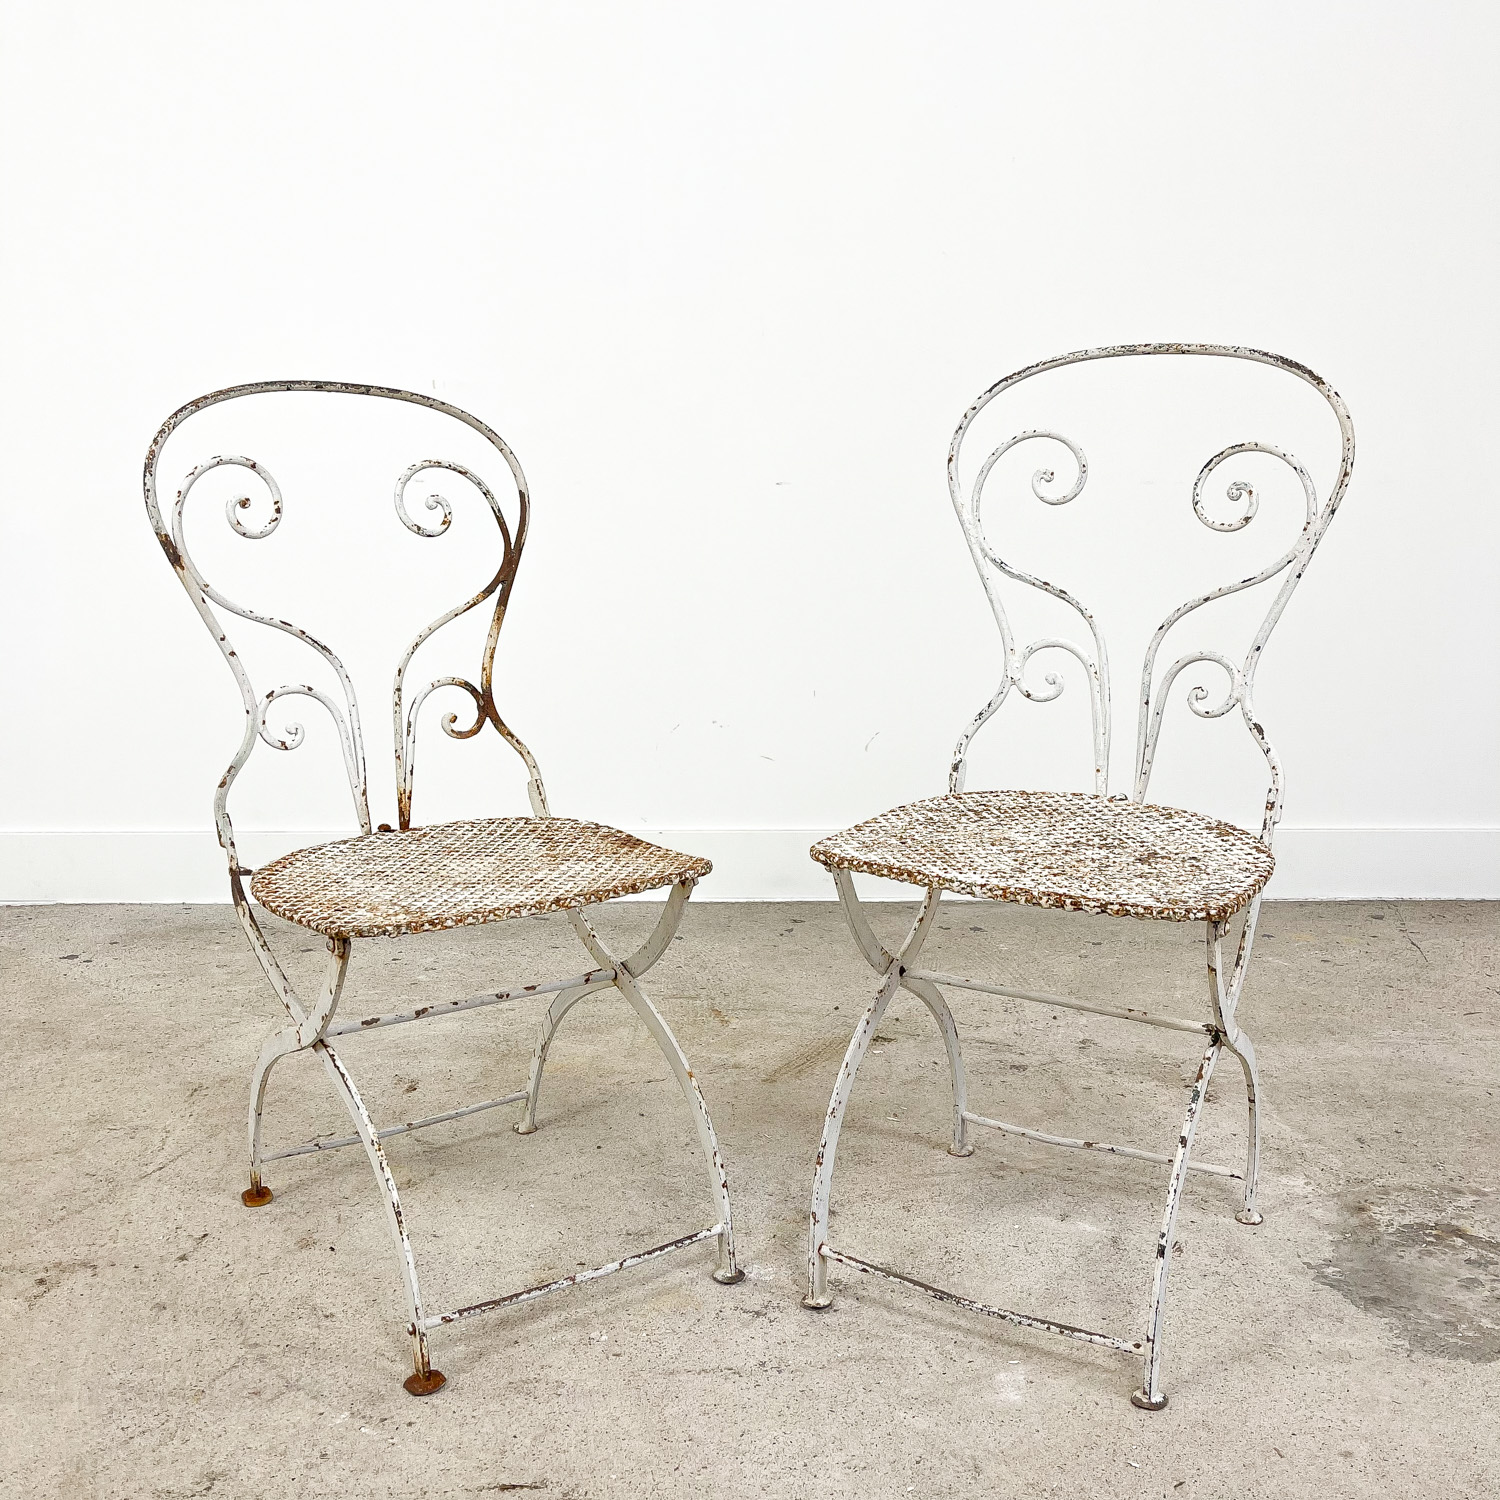 Set of two vintage foldable metal bistro chairs by Mathieu matego